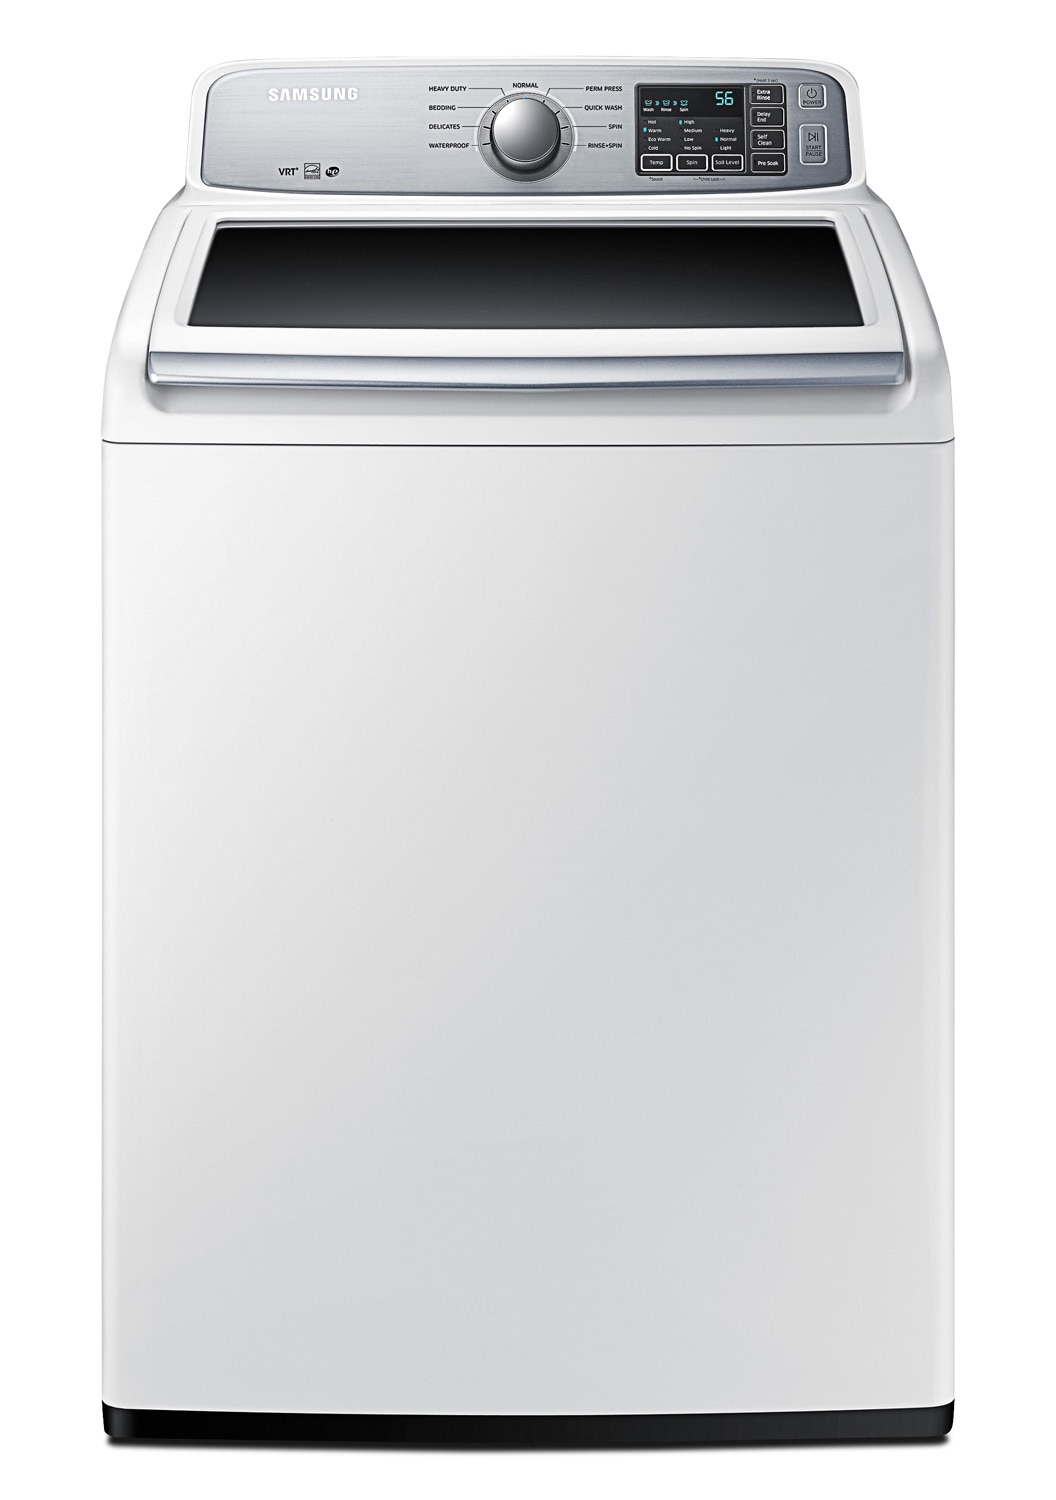 Samsung White Top Load Washer 5 2 Cu Ft Iec